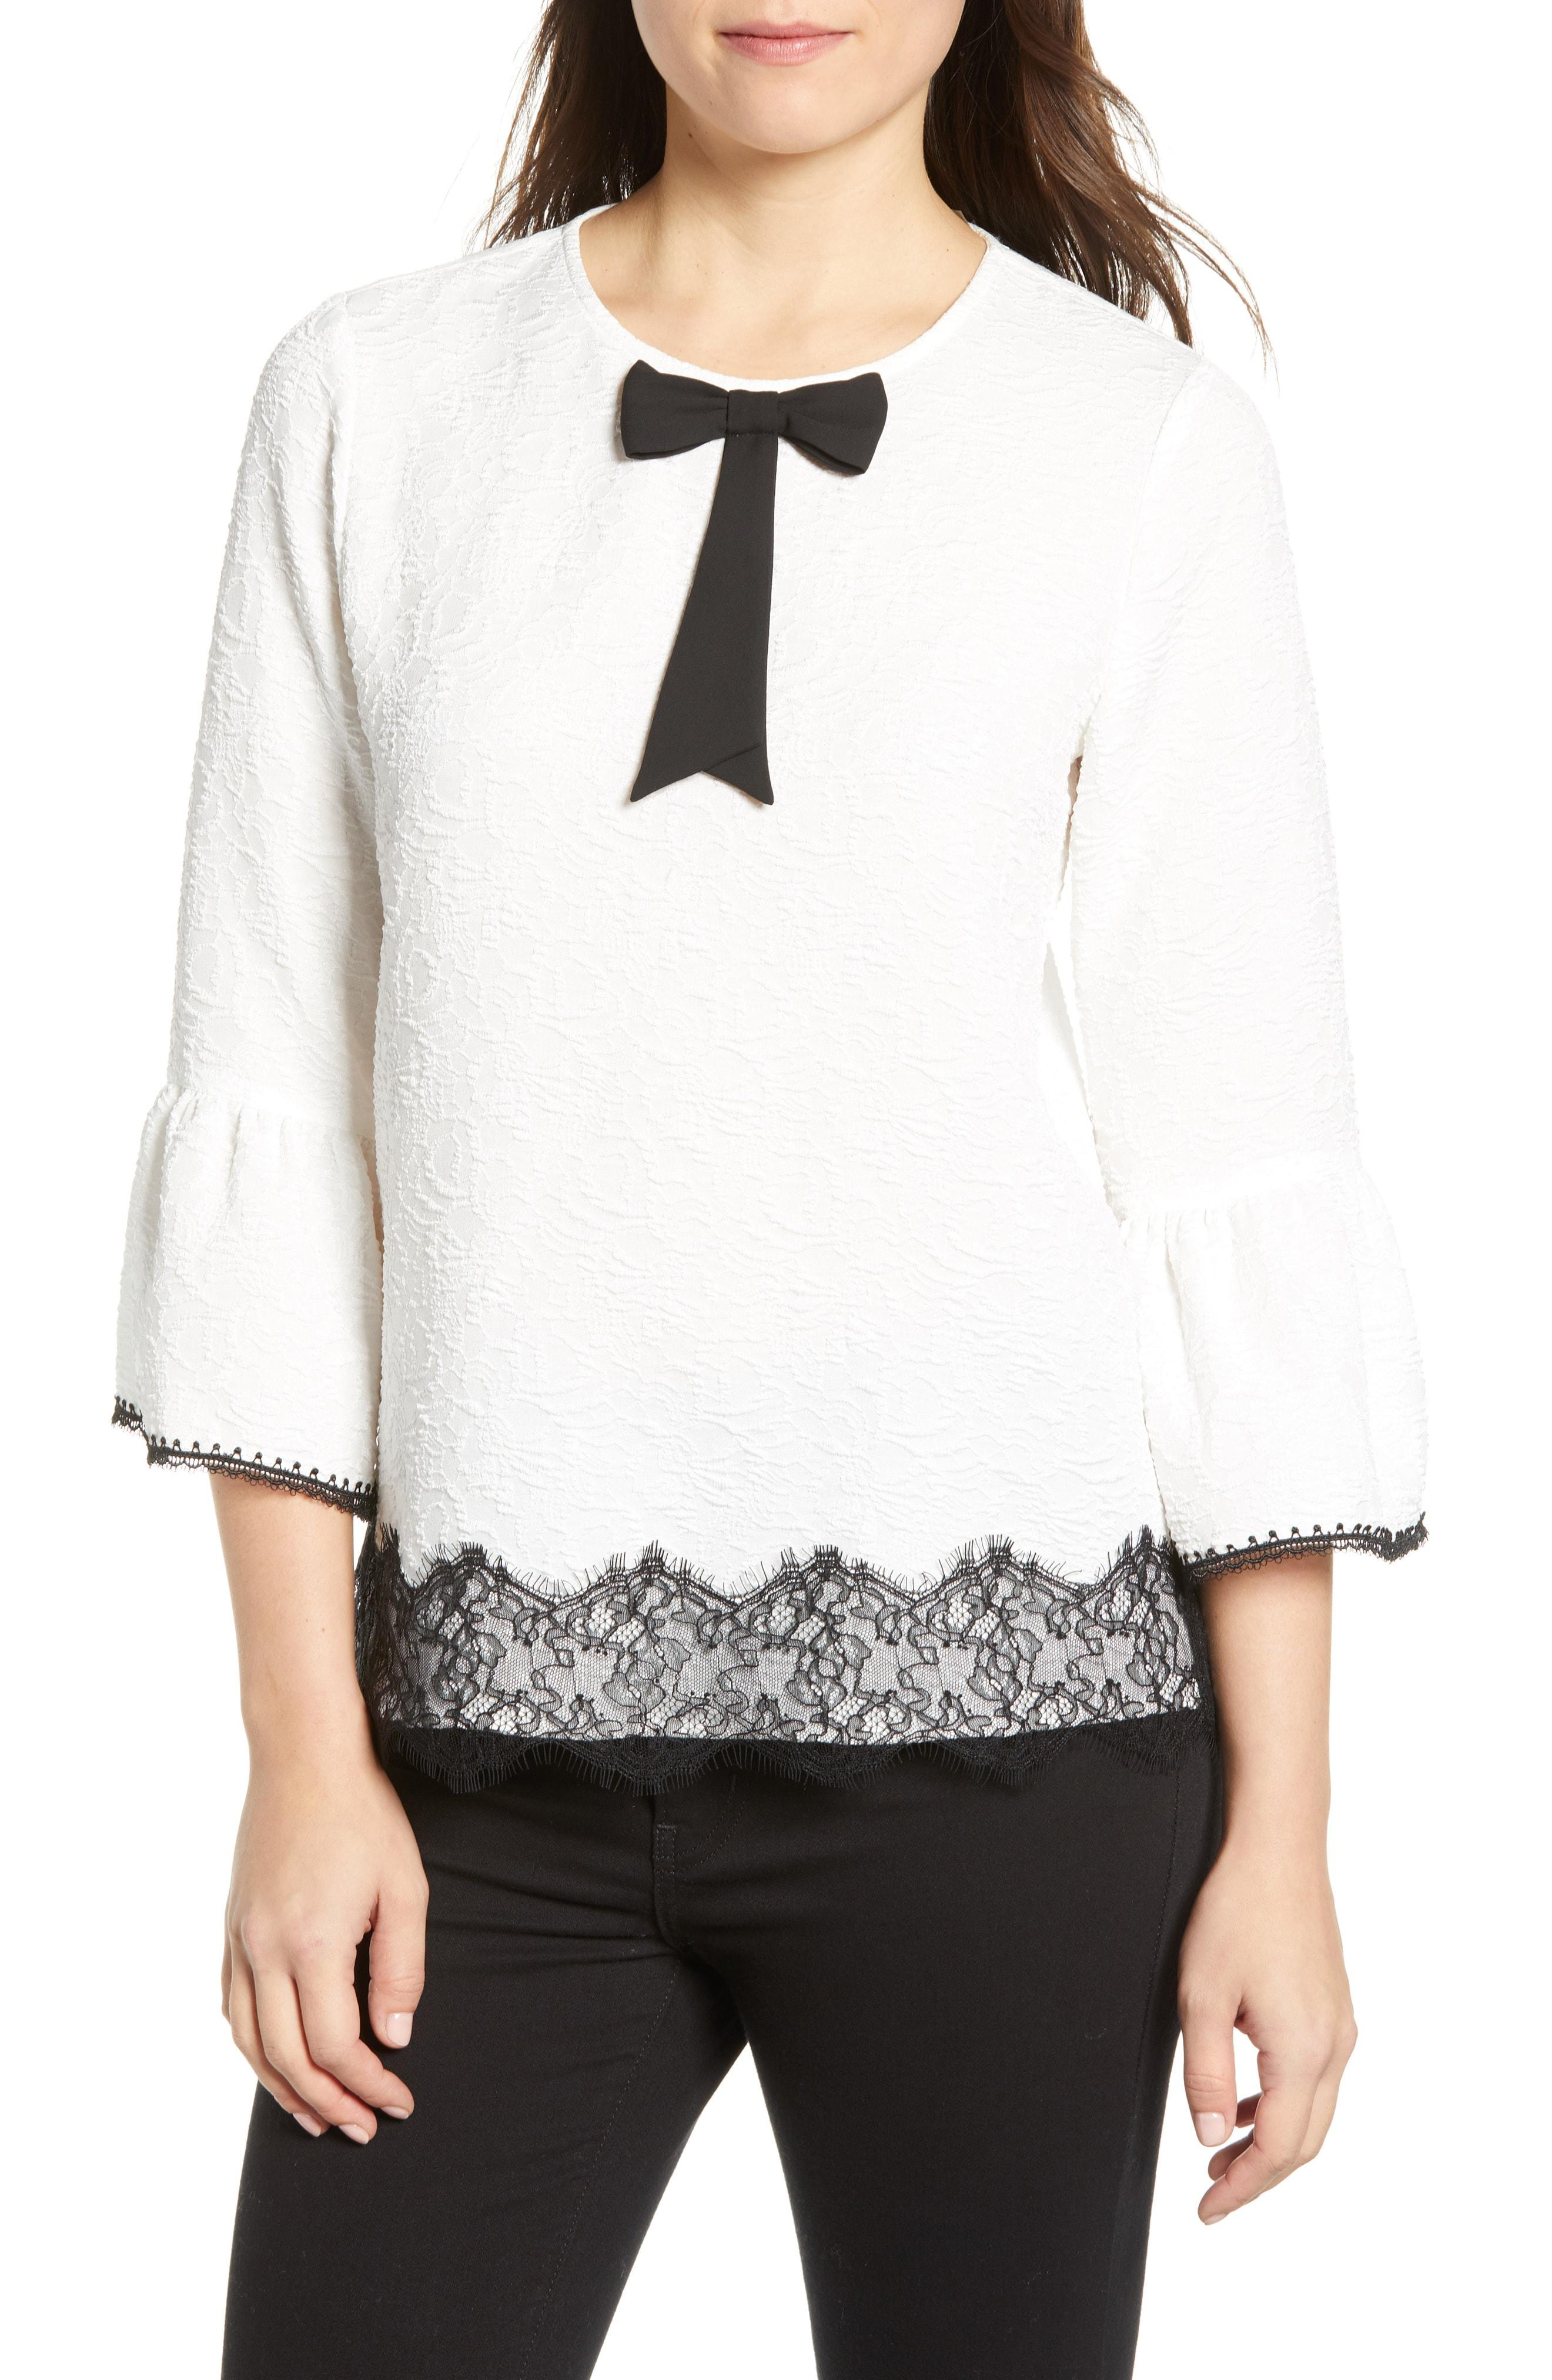 1acc632e2a58 Lyst - Karl Lagerfeld Lace Bell Sleeve Blouse in White - Save 17%